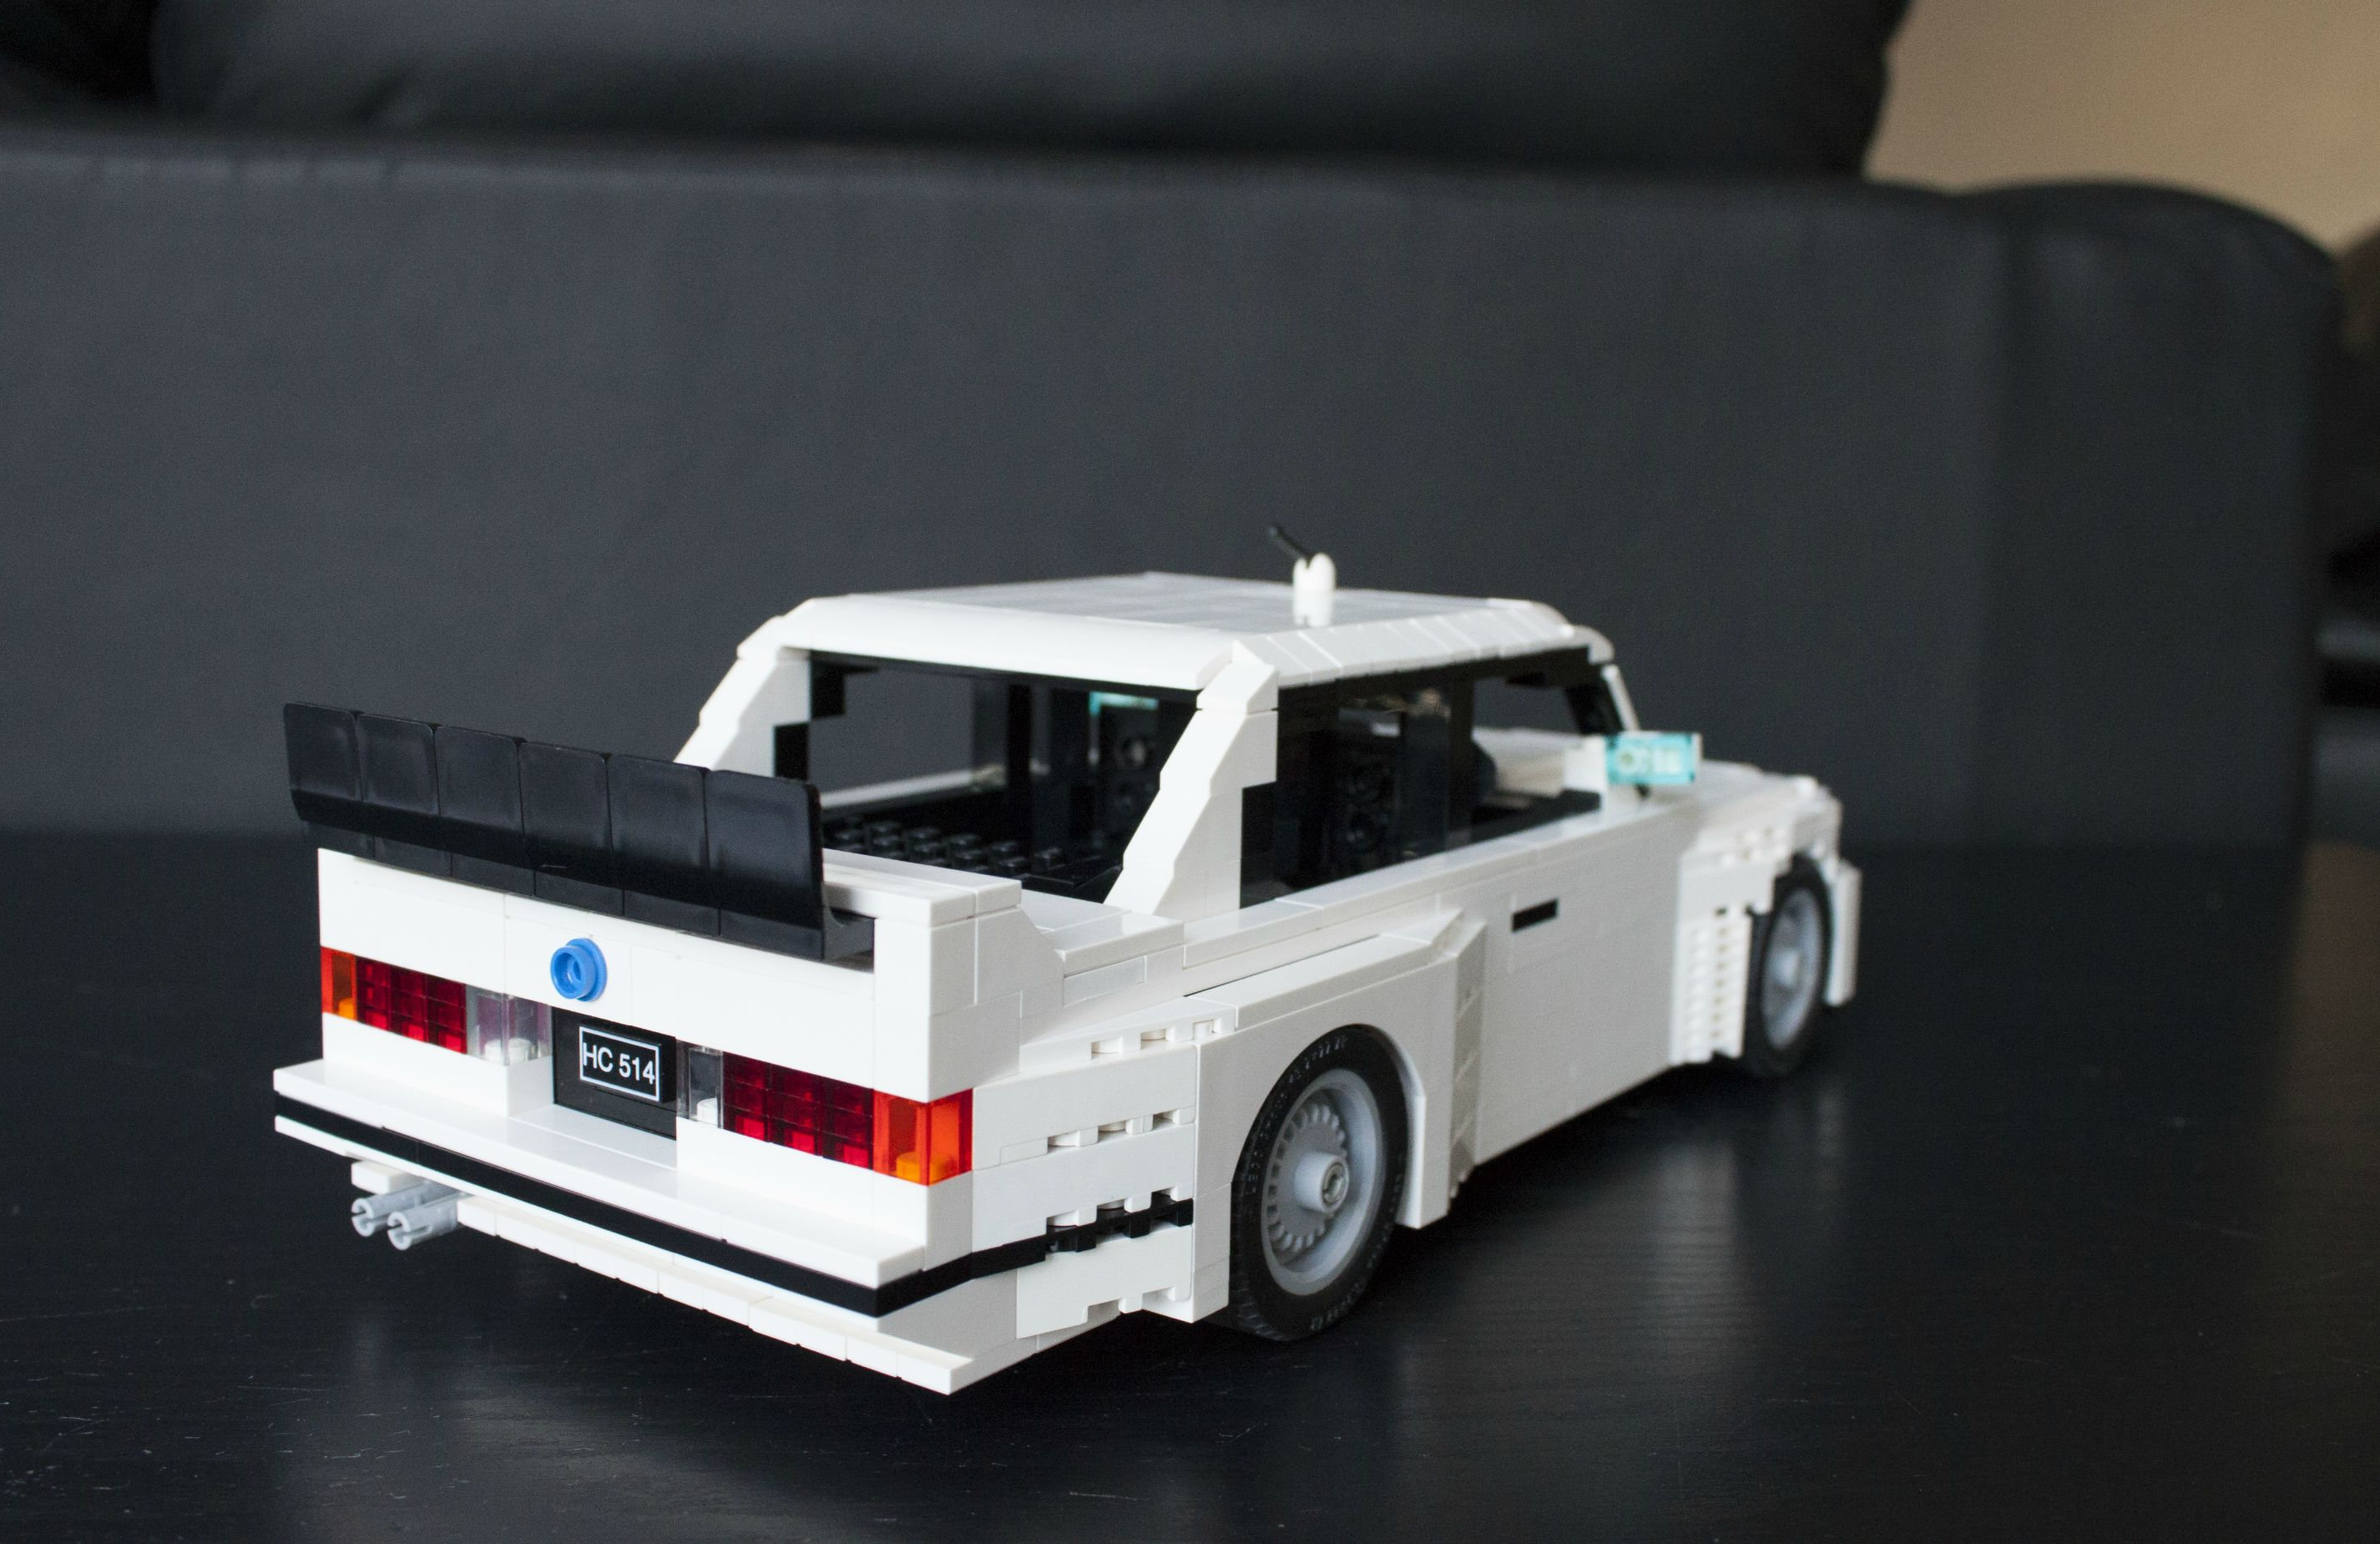 This Lego E30 M3 Can Become Reality, but It Needs Your ...